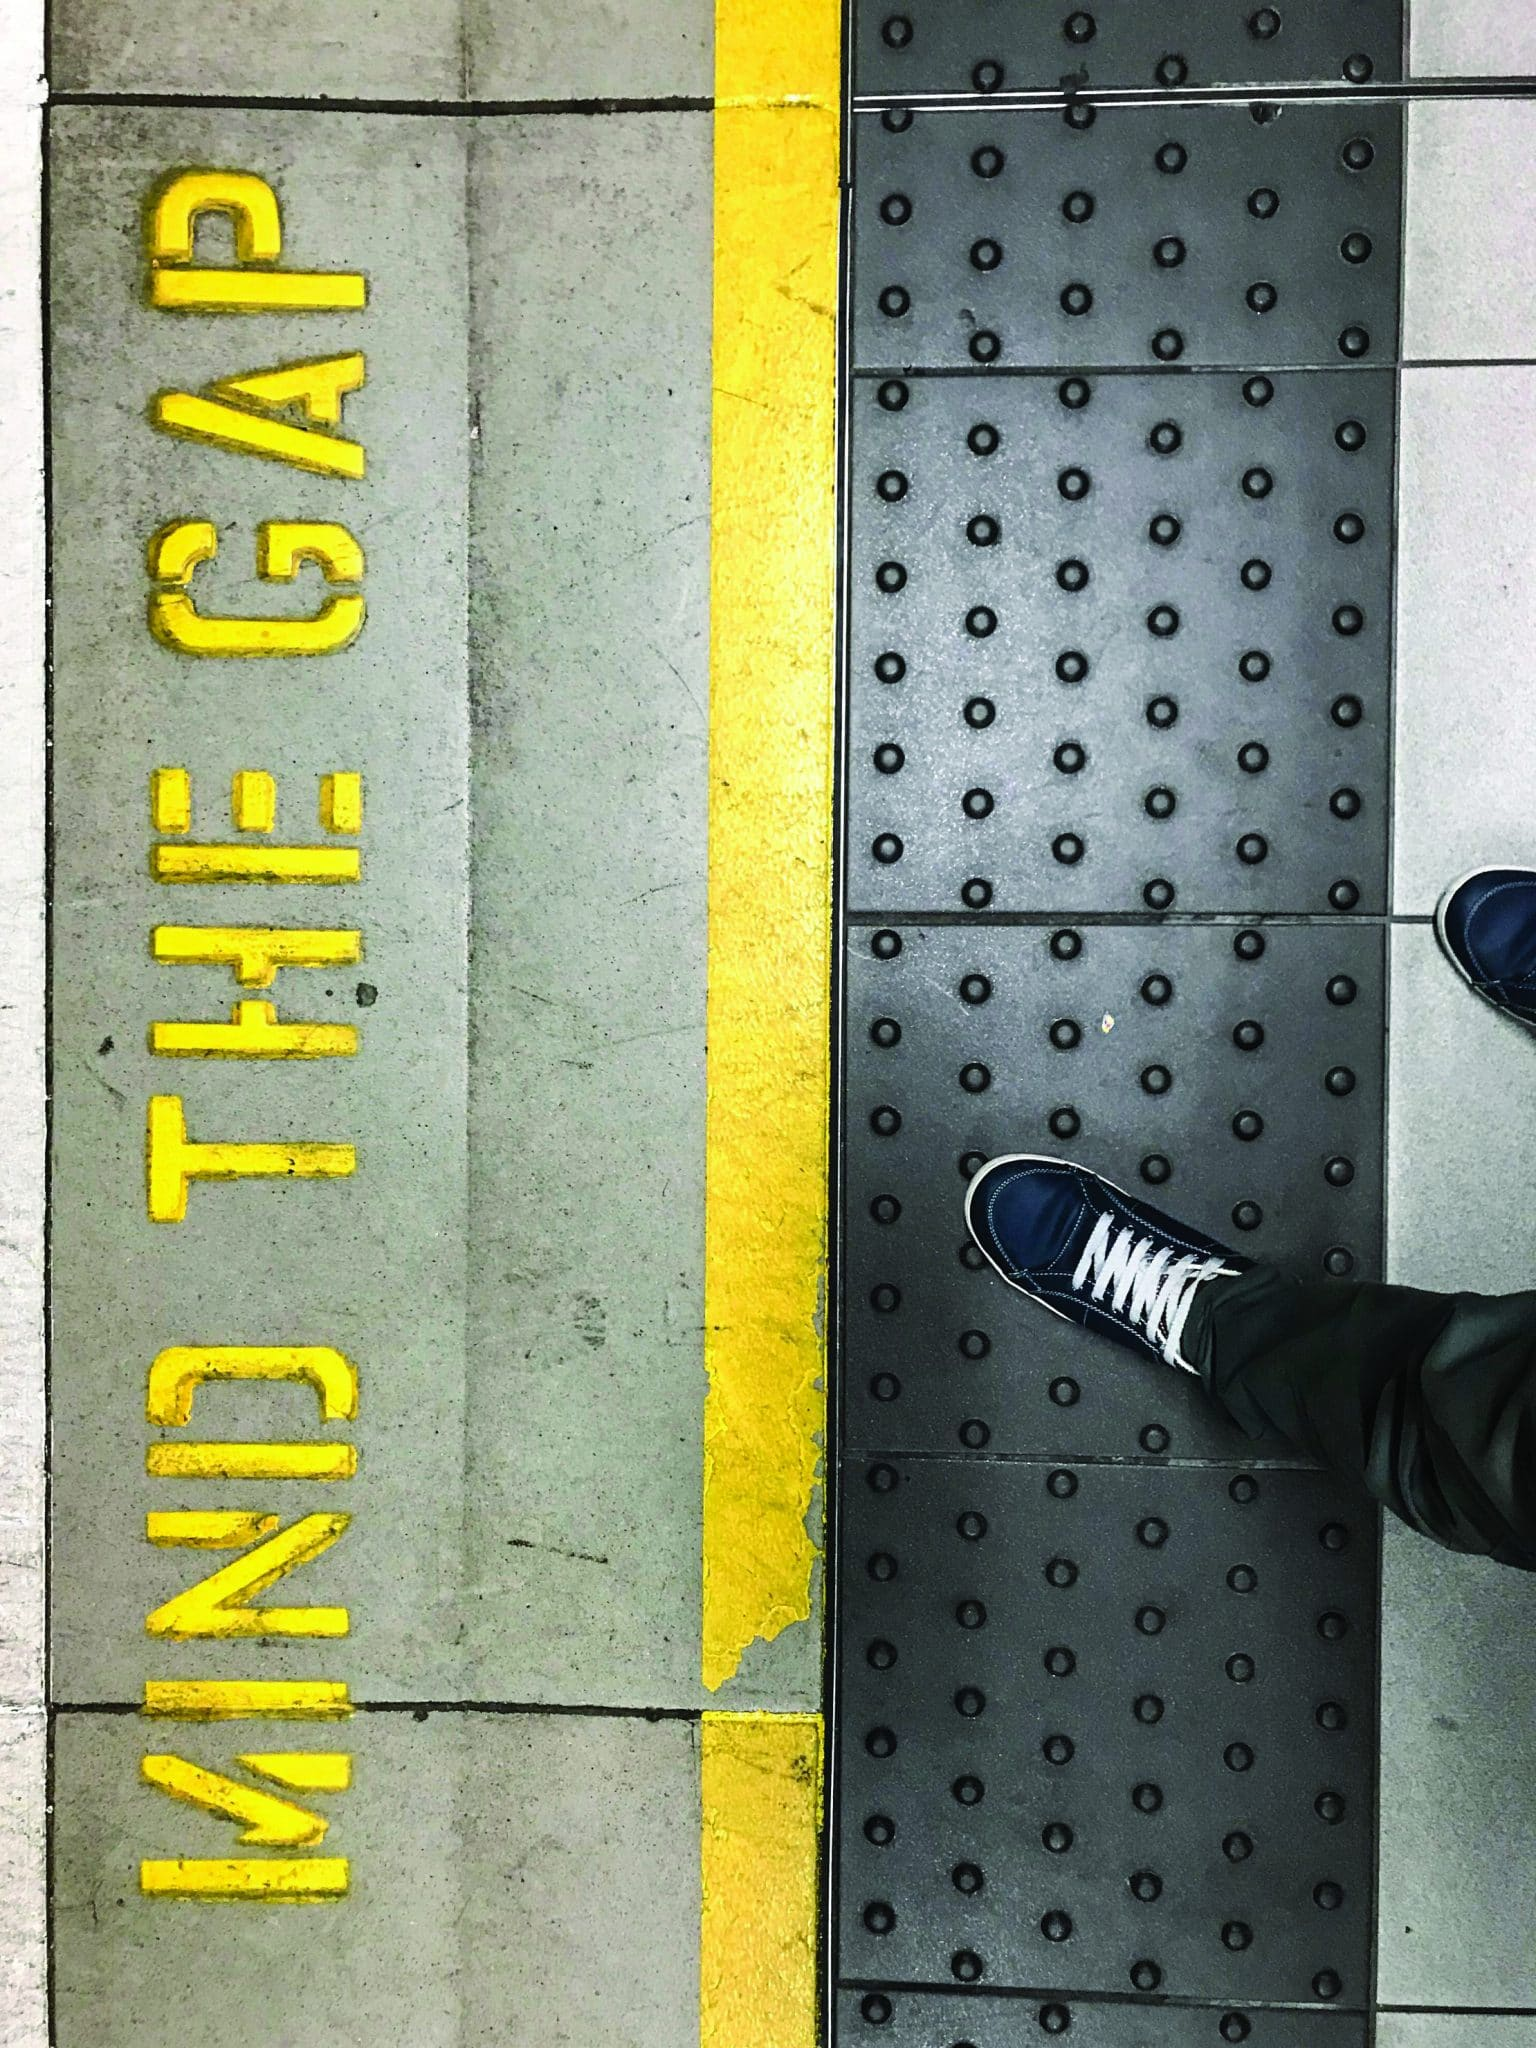 Feet stepping on ruber surface behind yellow safety line of London Underground. Mind the gap sign written on the ground